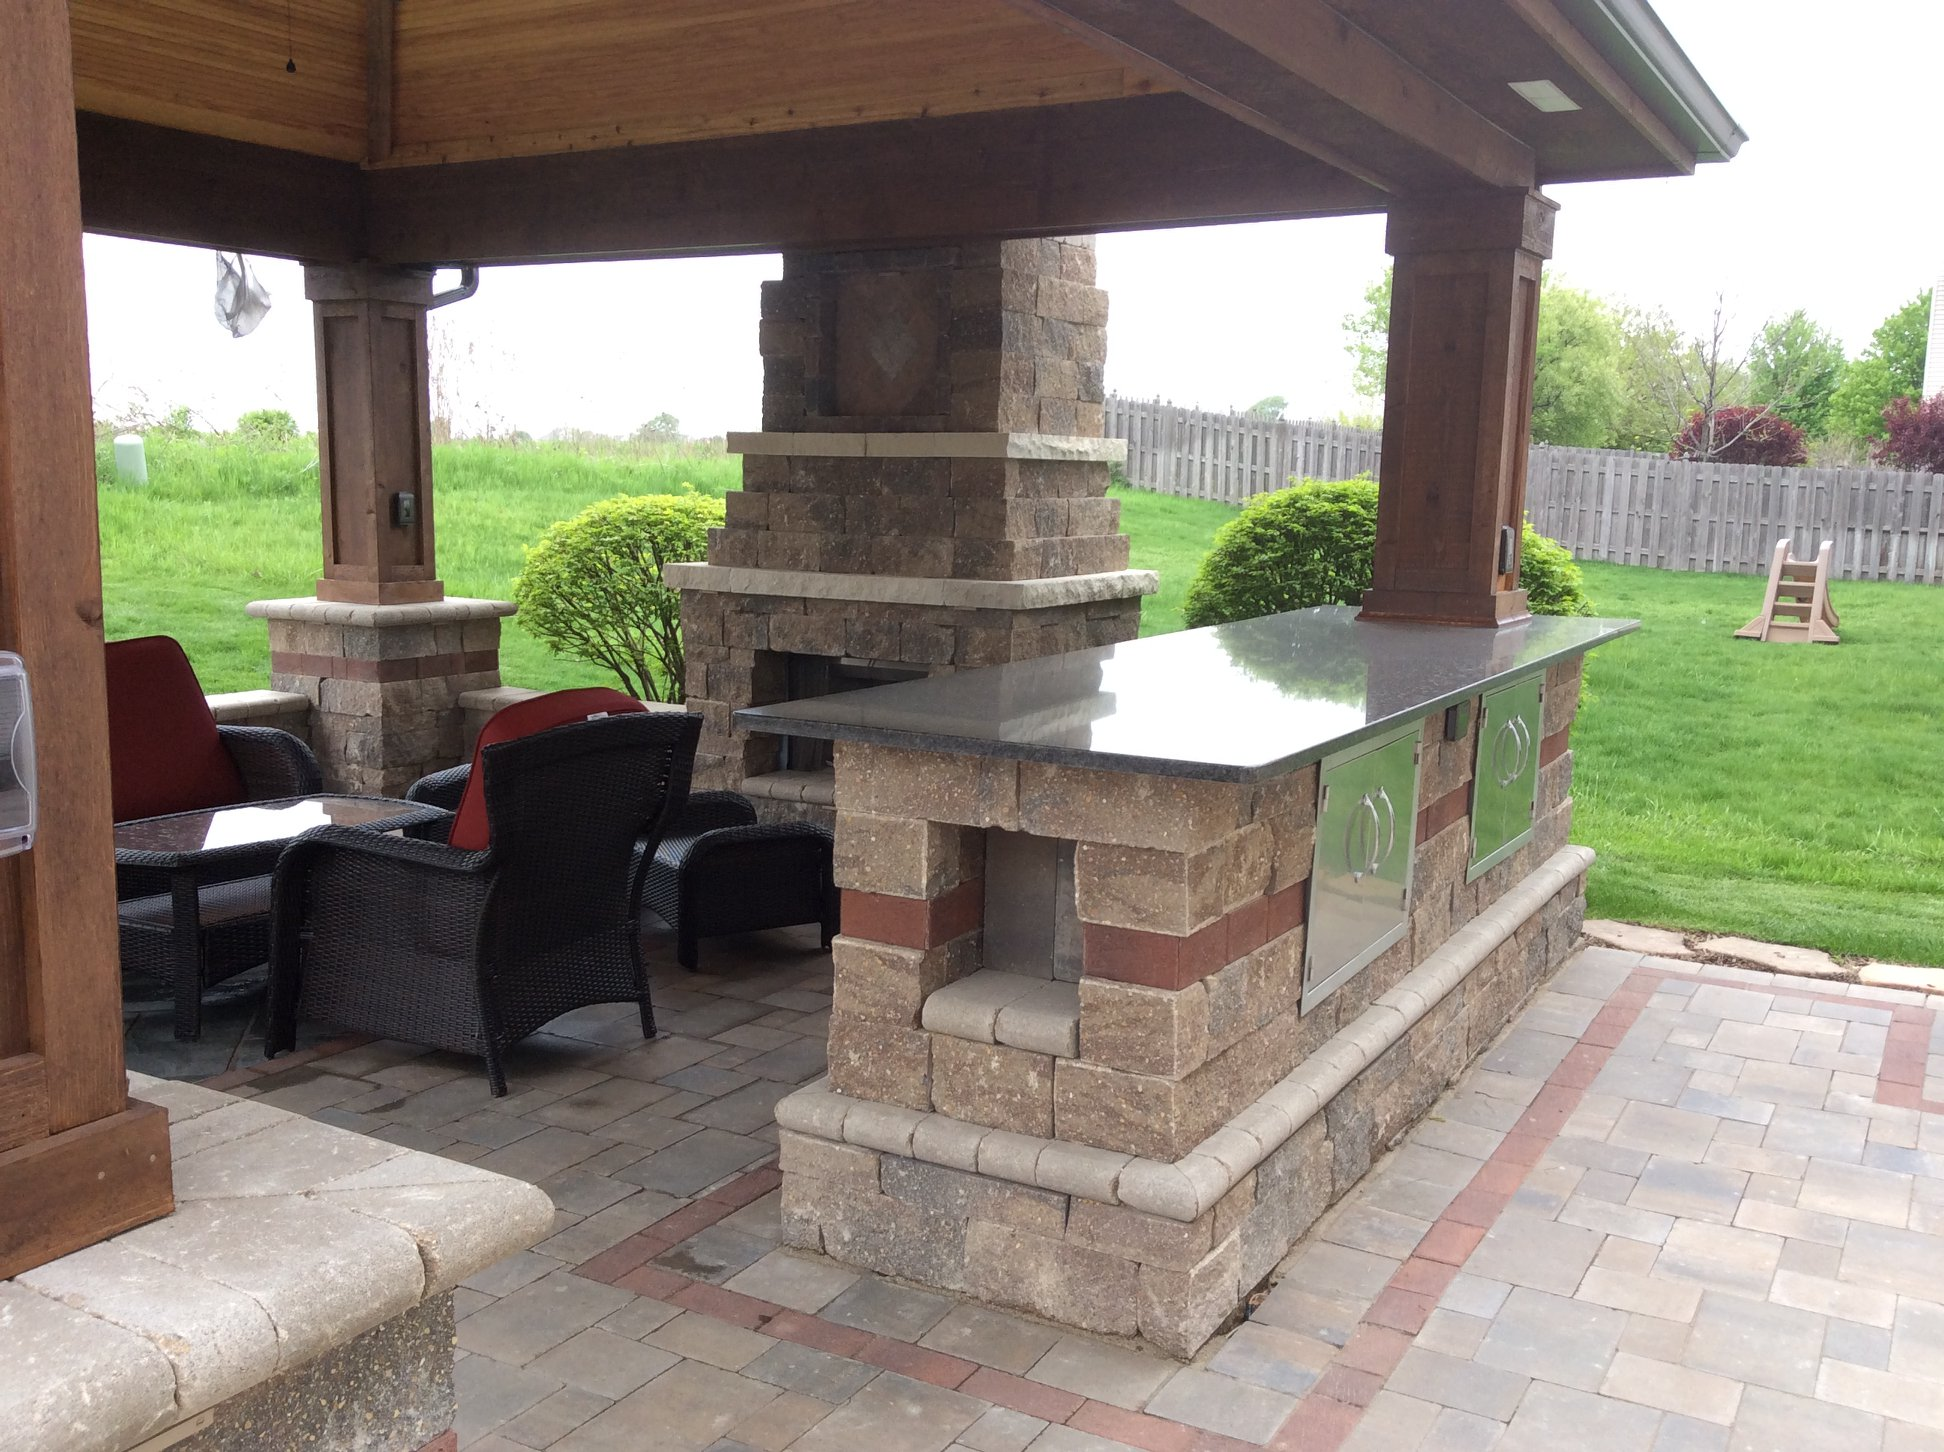 Outdoor fireplace and kitchen in Plainfield, IL